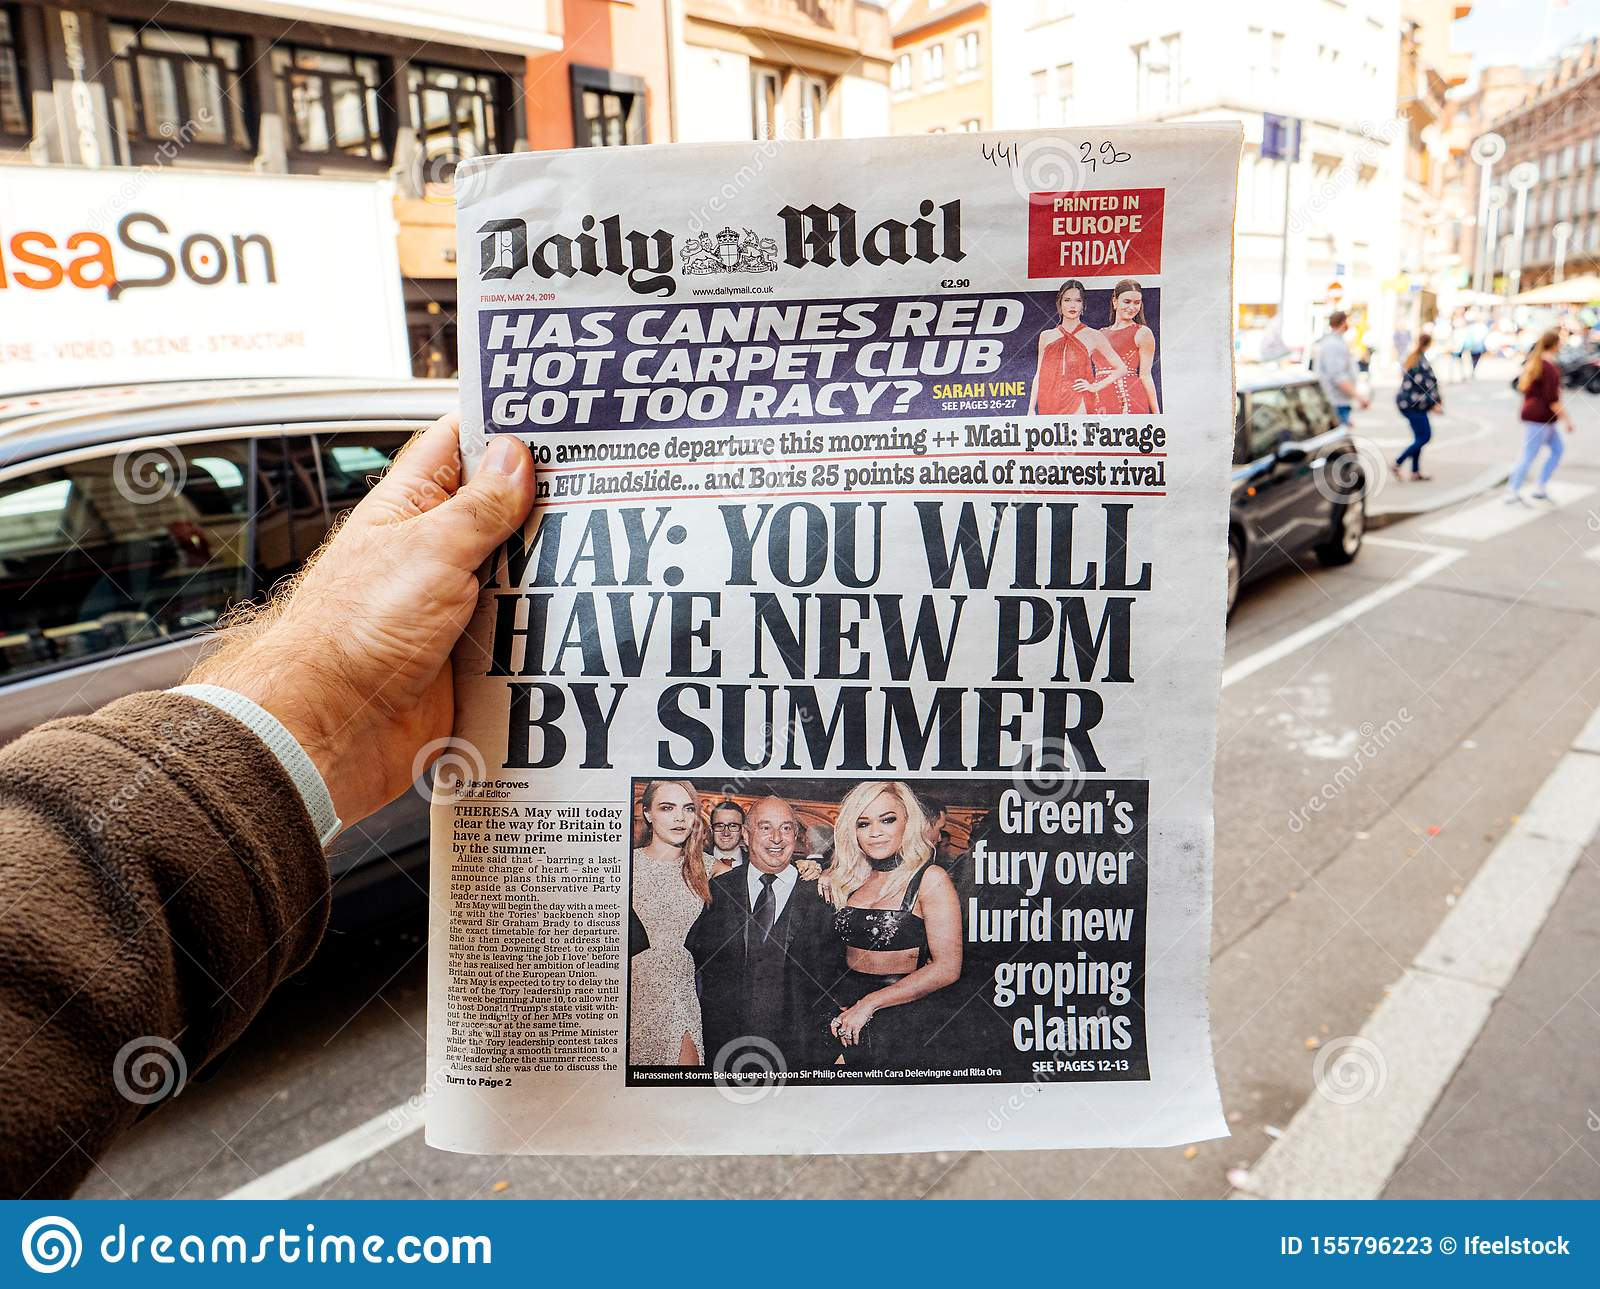 You will have a new PM by summer title newspaper daily mail